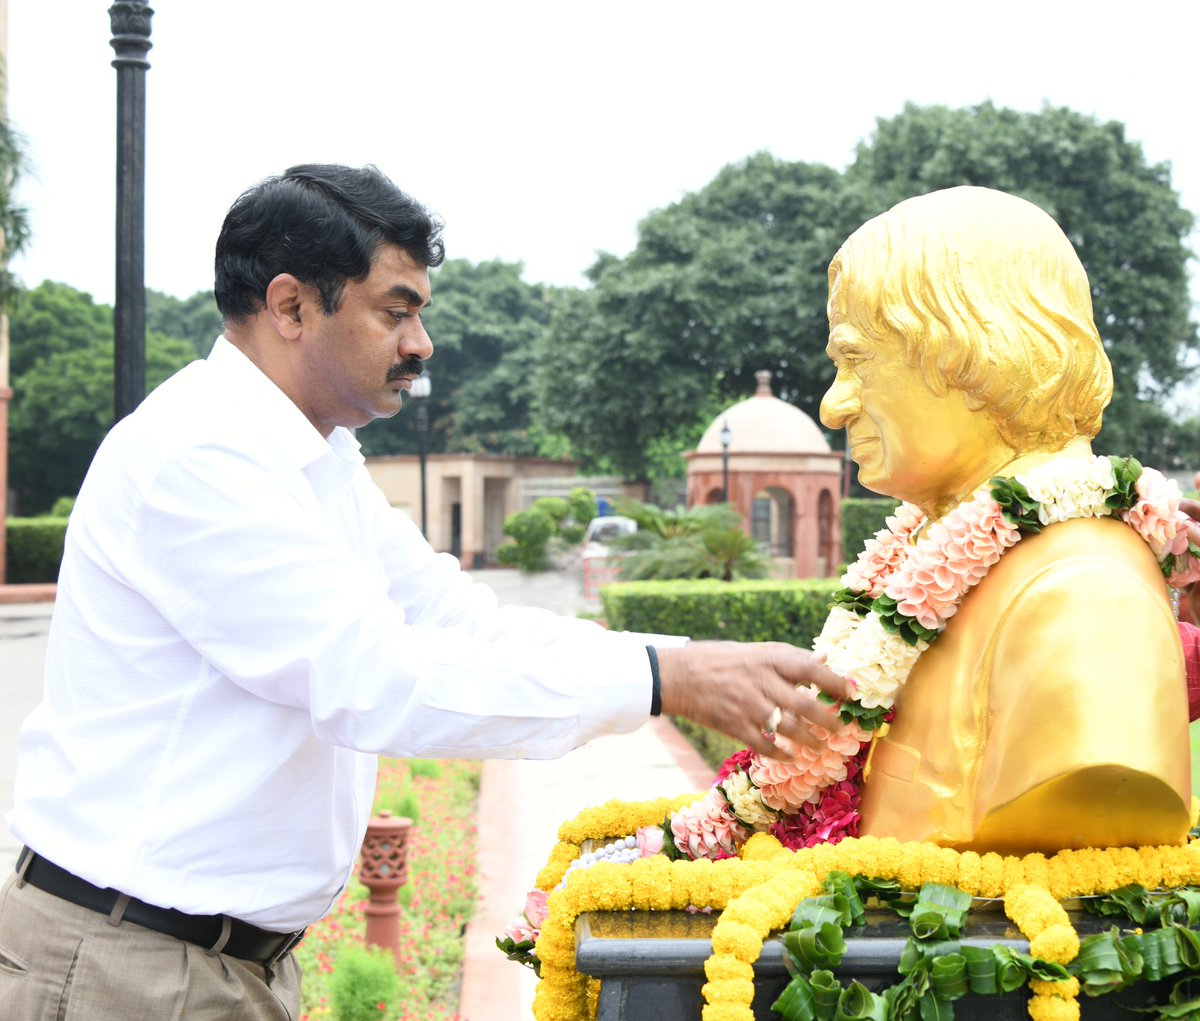 In fond remembrance of Dr APJ Abdul Kalam on his sixth Death  Anniversary, Floral tributes were offered by Chairman DRDO Dr G Satheesh Reddy and other Personnel at DRDO Bhawan. He led DRDO during 1992-1999 taking it to  greater heights. #APJAbdulKalam https://t.co/yN5ITOcCl2